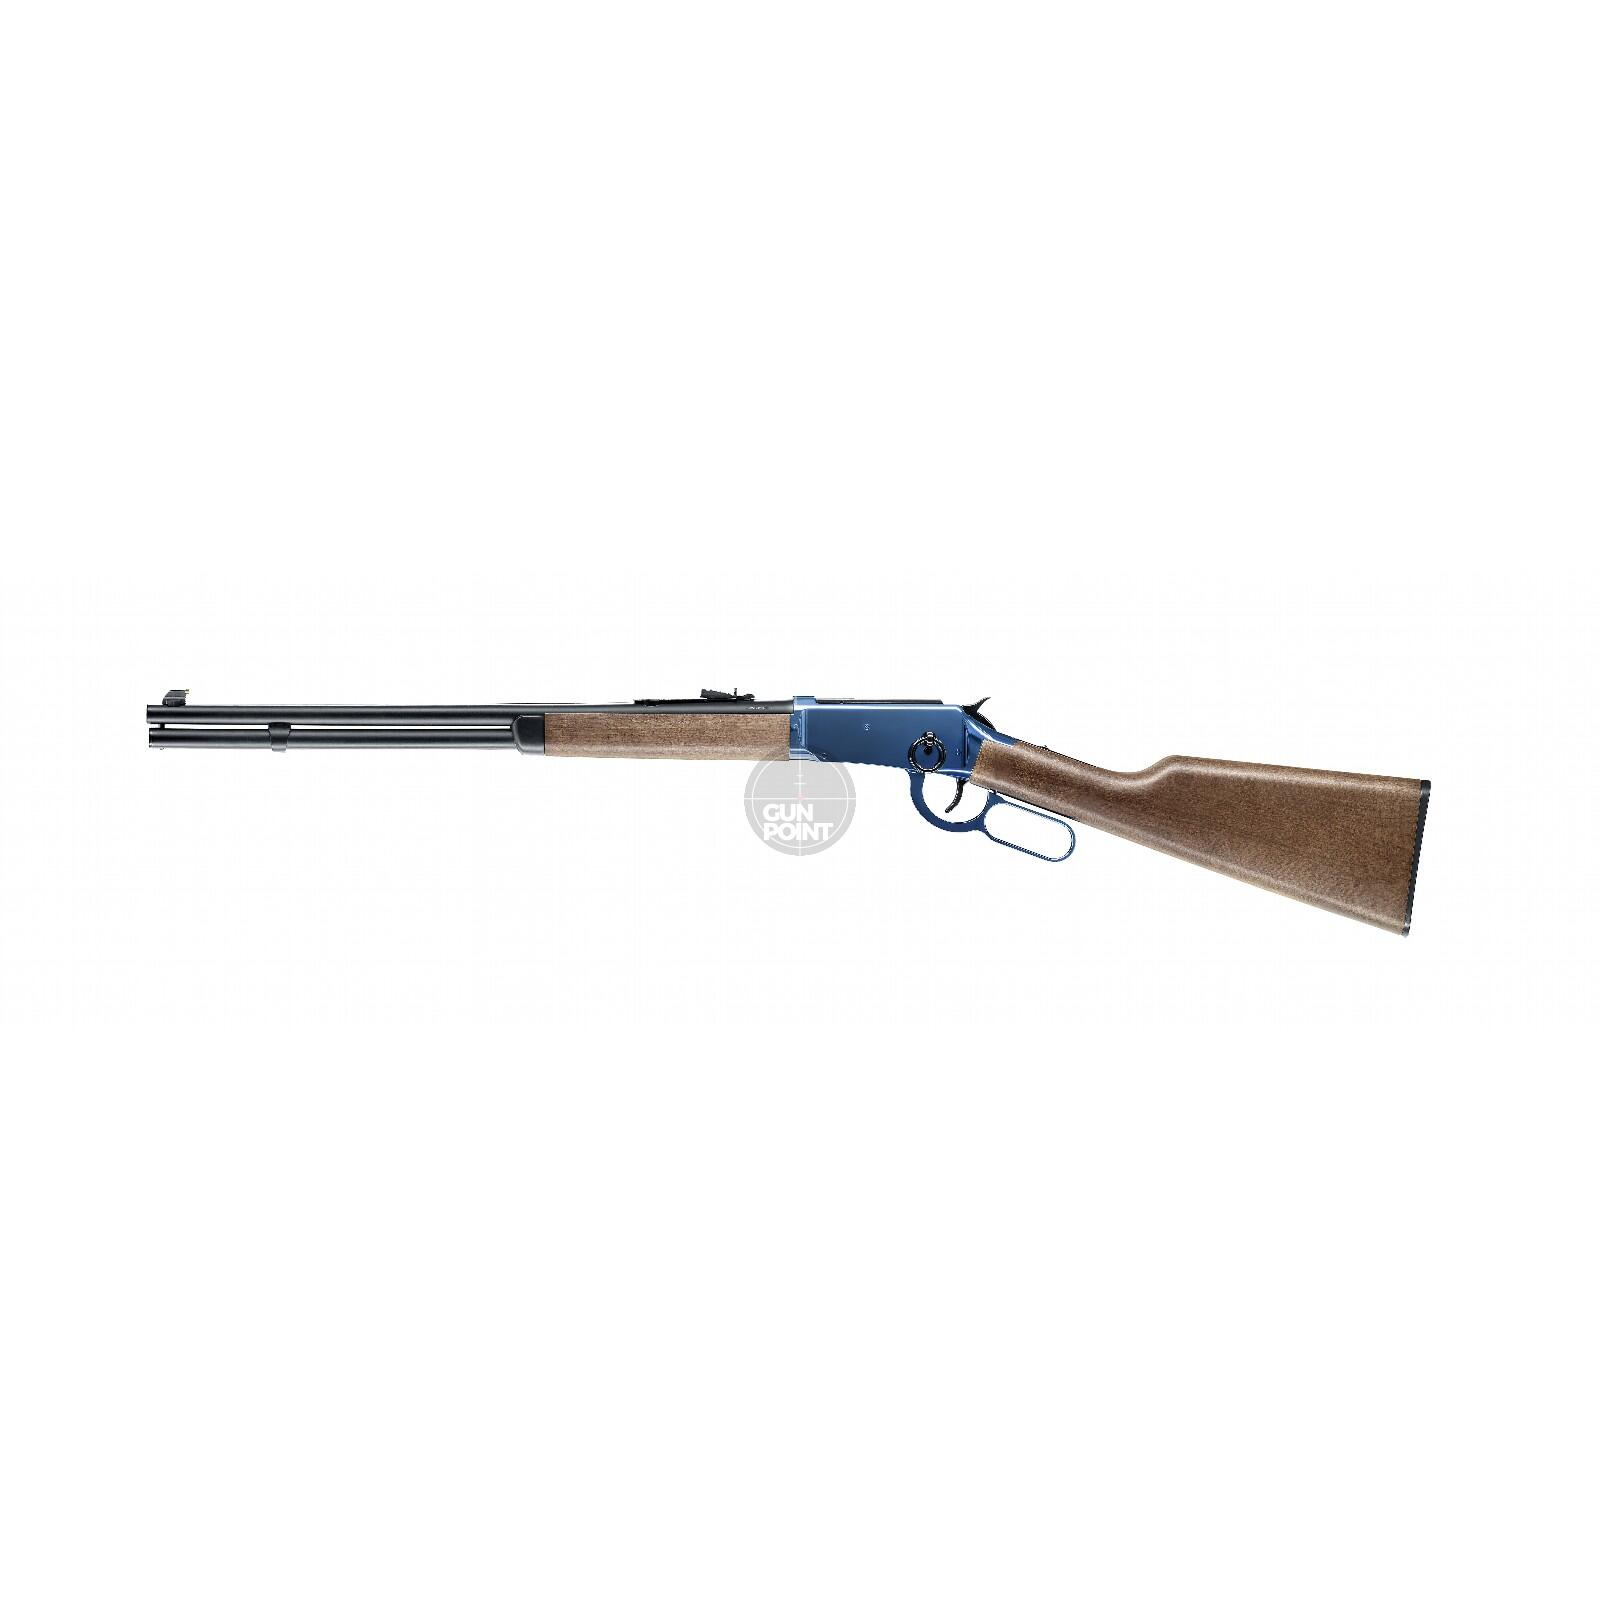 Luftgewehr - Legends - Cowboy Rifle - Co2-System - Kal. 4,5 mm BB - Blue